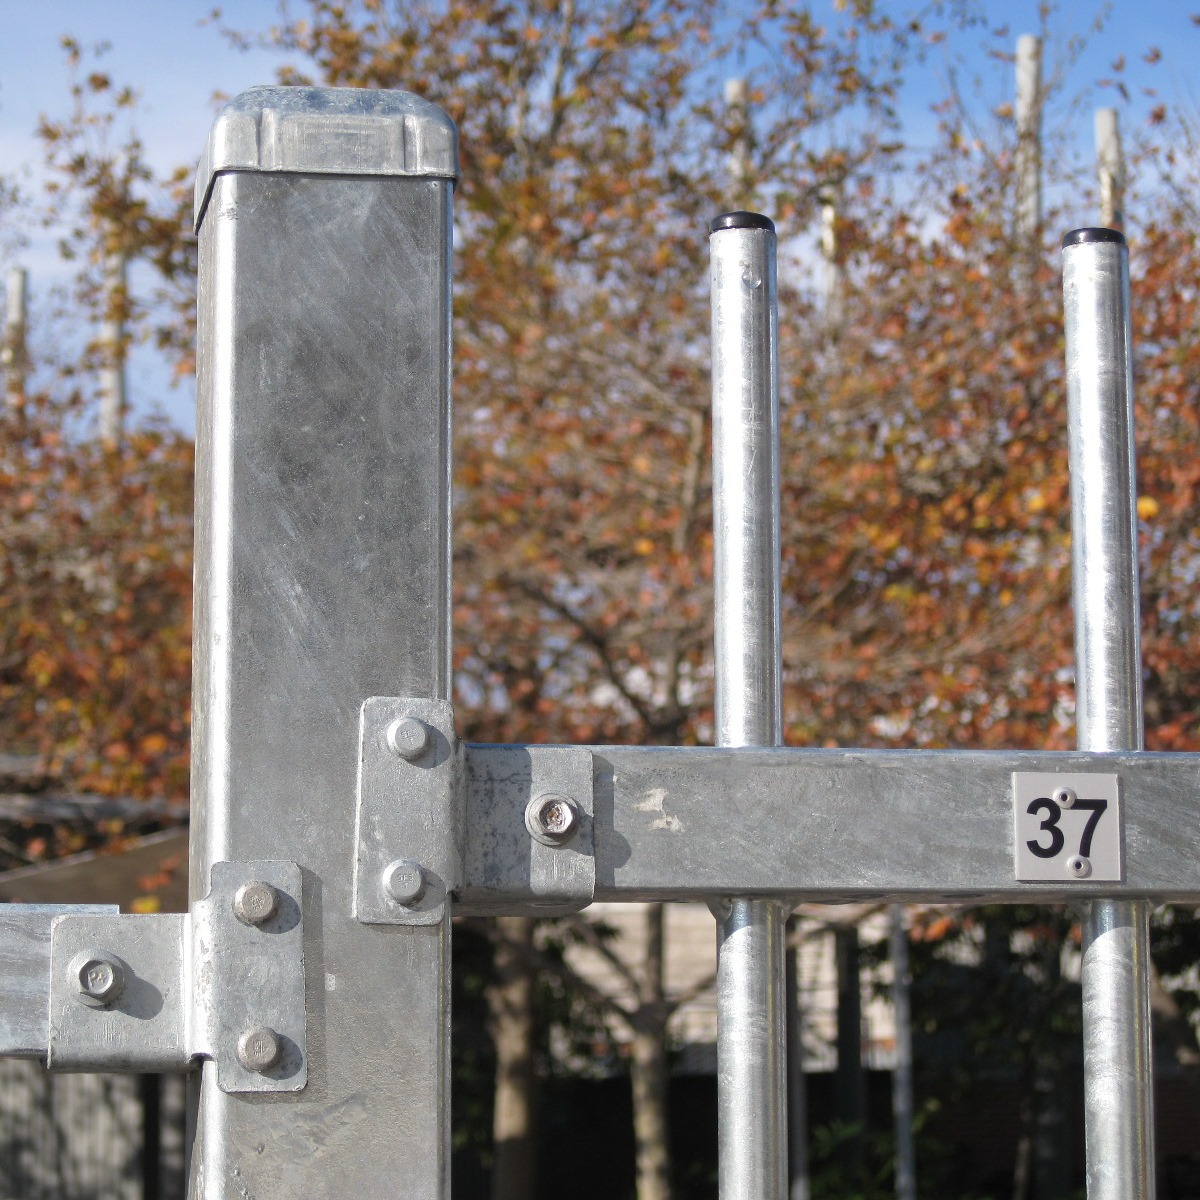 The proprietary bracket system allows for the quick and easy removal and install of the fence panel that is numbered.